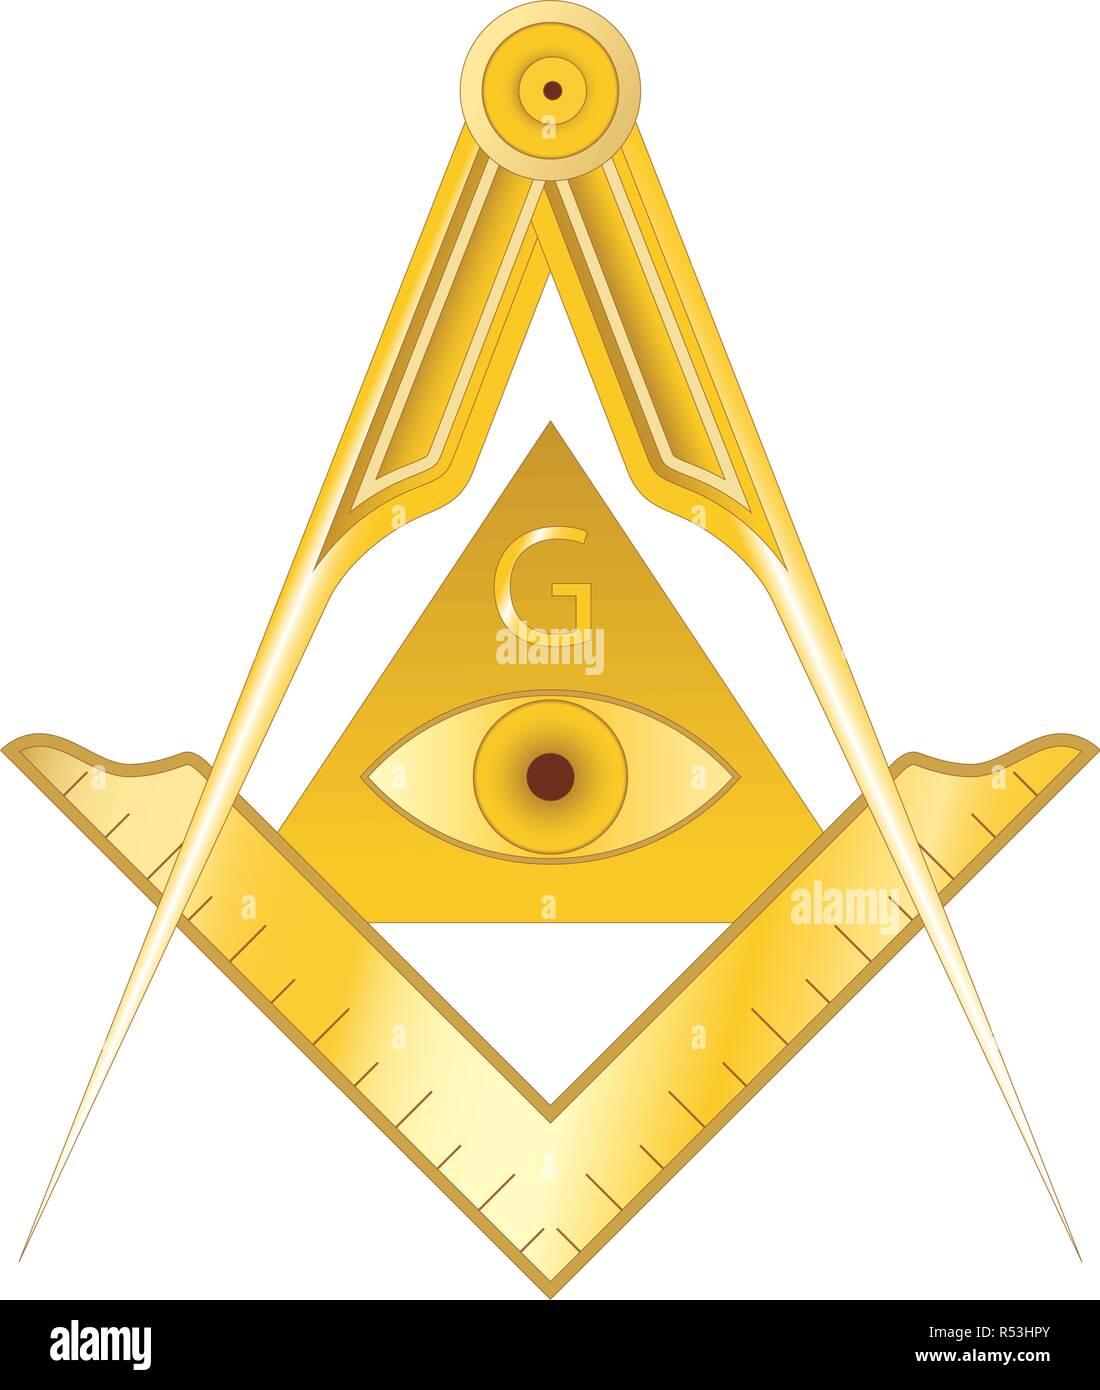 Golden masonic square and compass symbol, with triangle, eye and G letter.  Mystic occult esoteric, sacred society. Vector illustration Stock Vector  Image & Art - Alamy